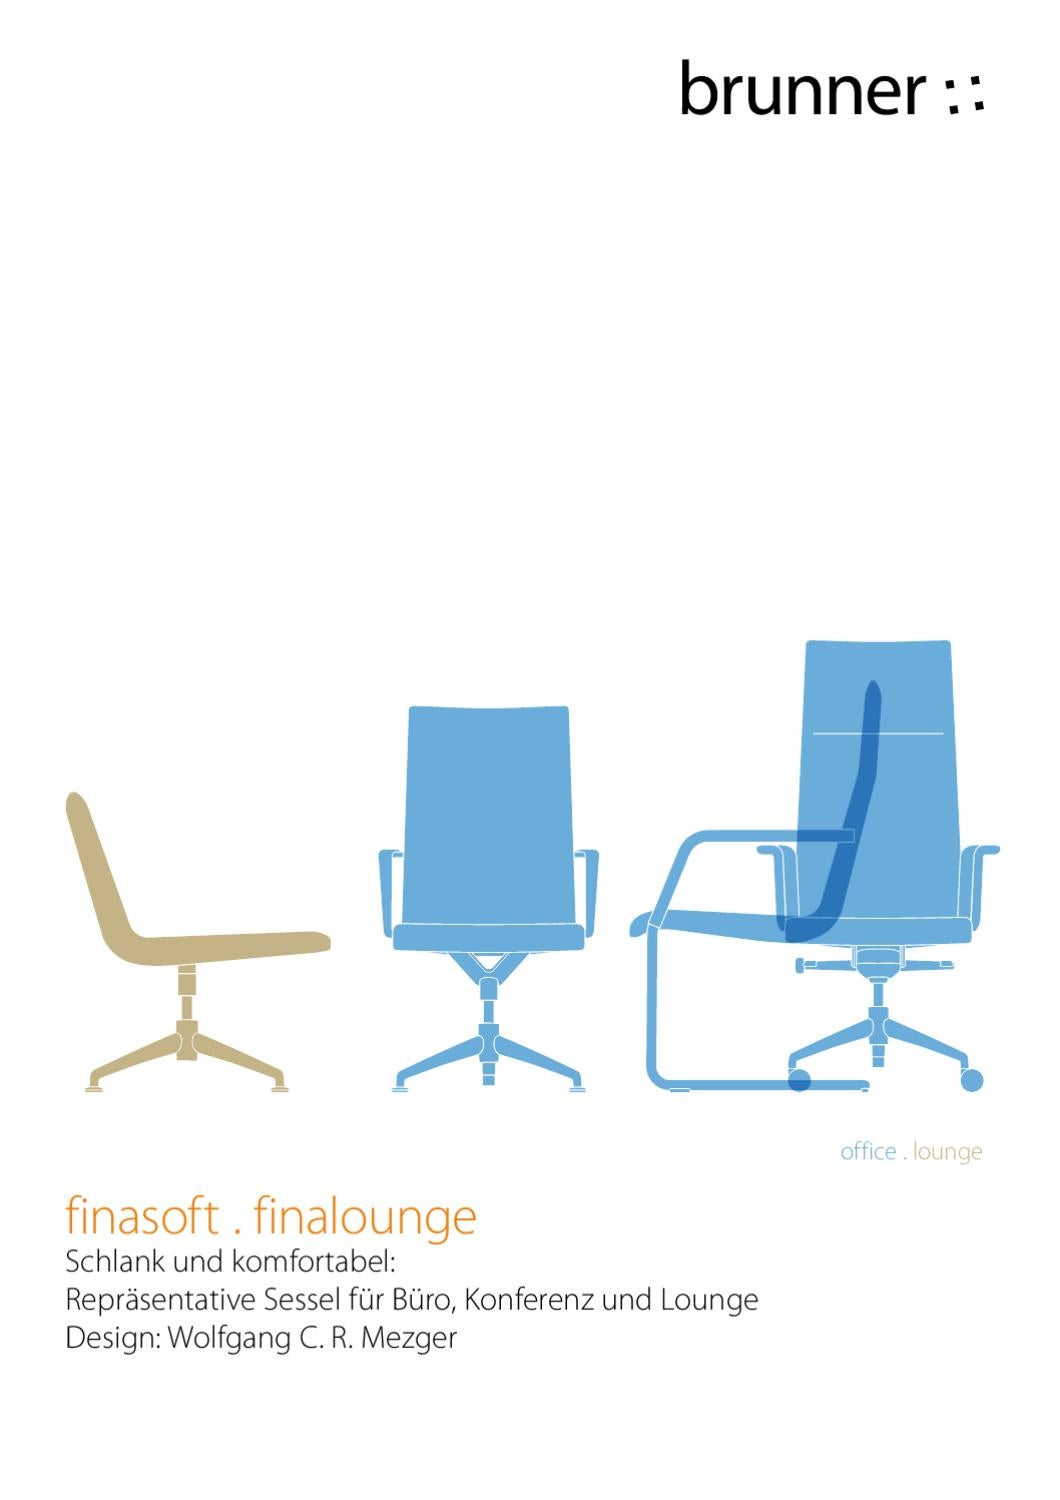 Brunner Sessel Katalog Brunner Fina Soft By Wipper Buerodesign Gmbh Issuu